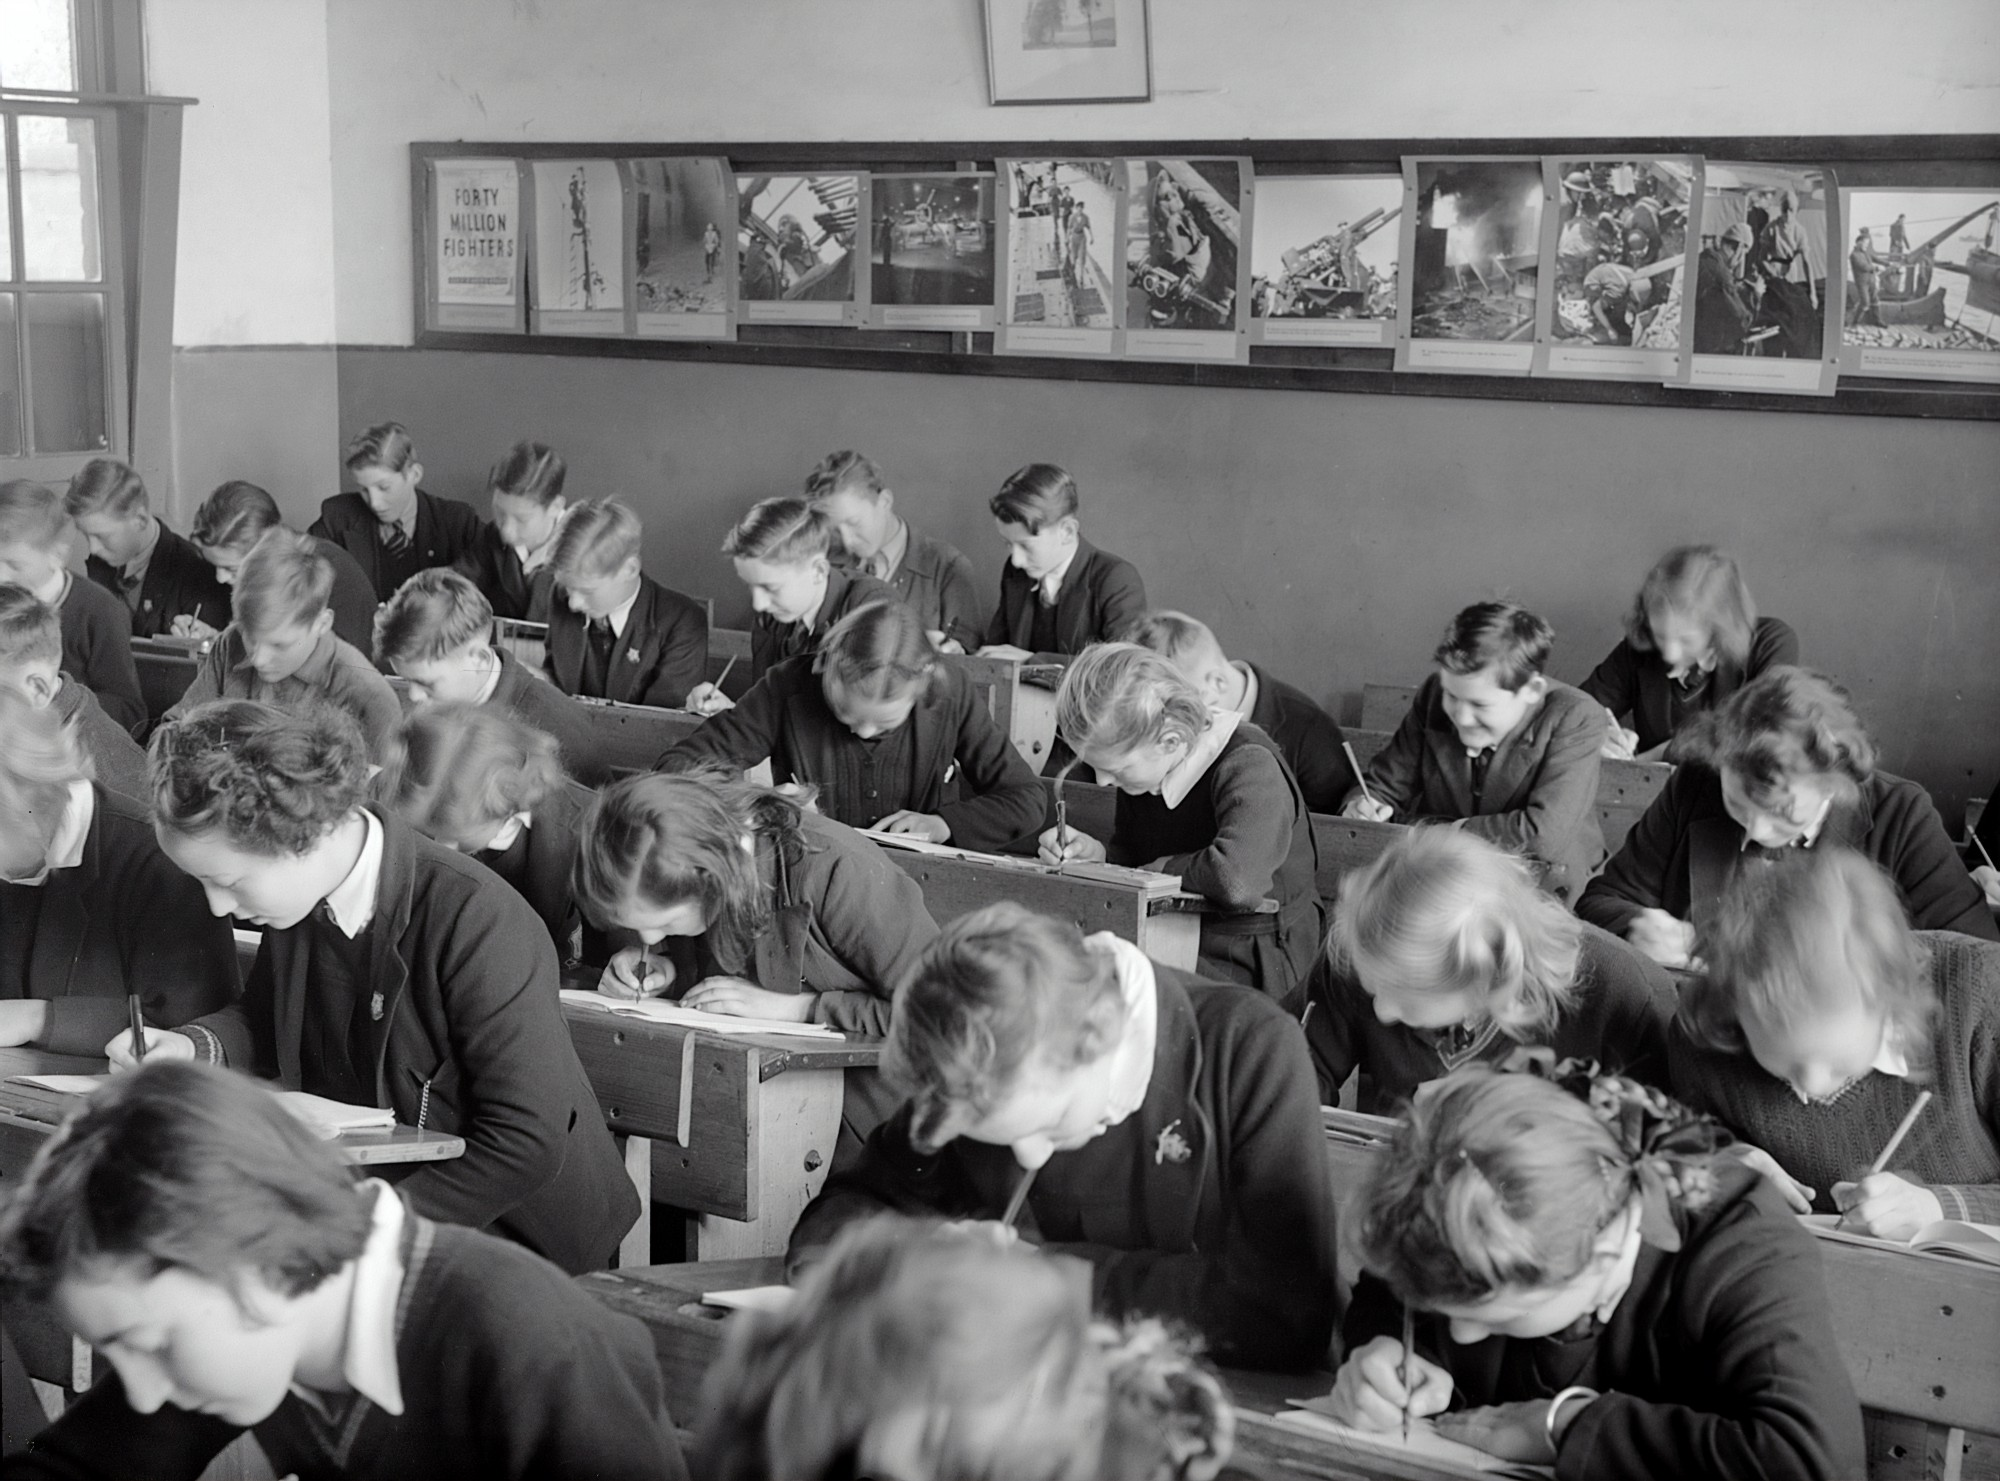 Black and white vintage photo of many uniformed pupils hard bent over desks at school.